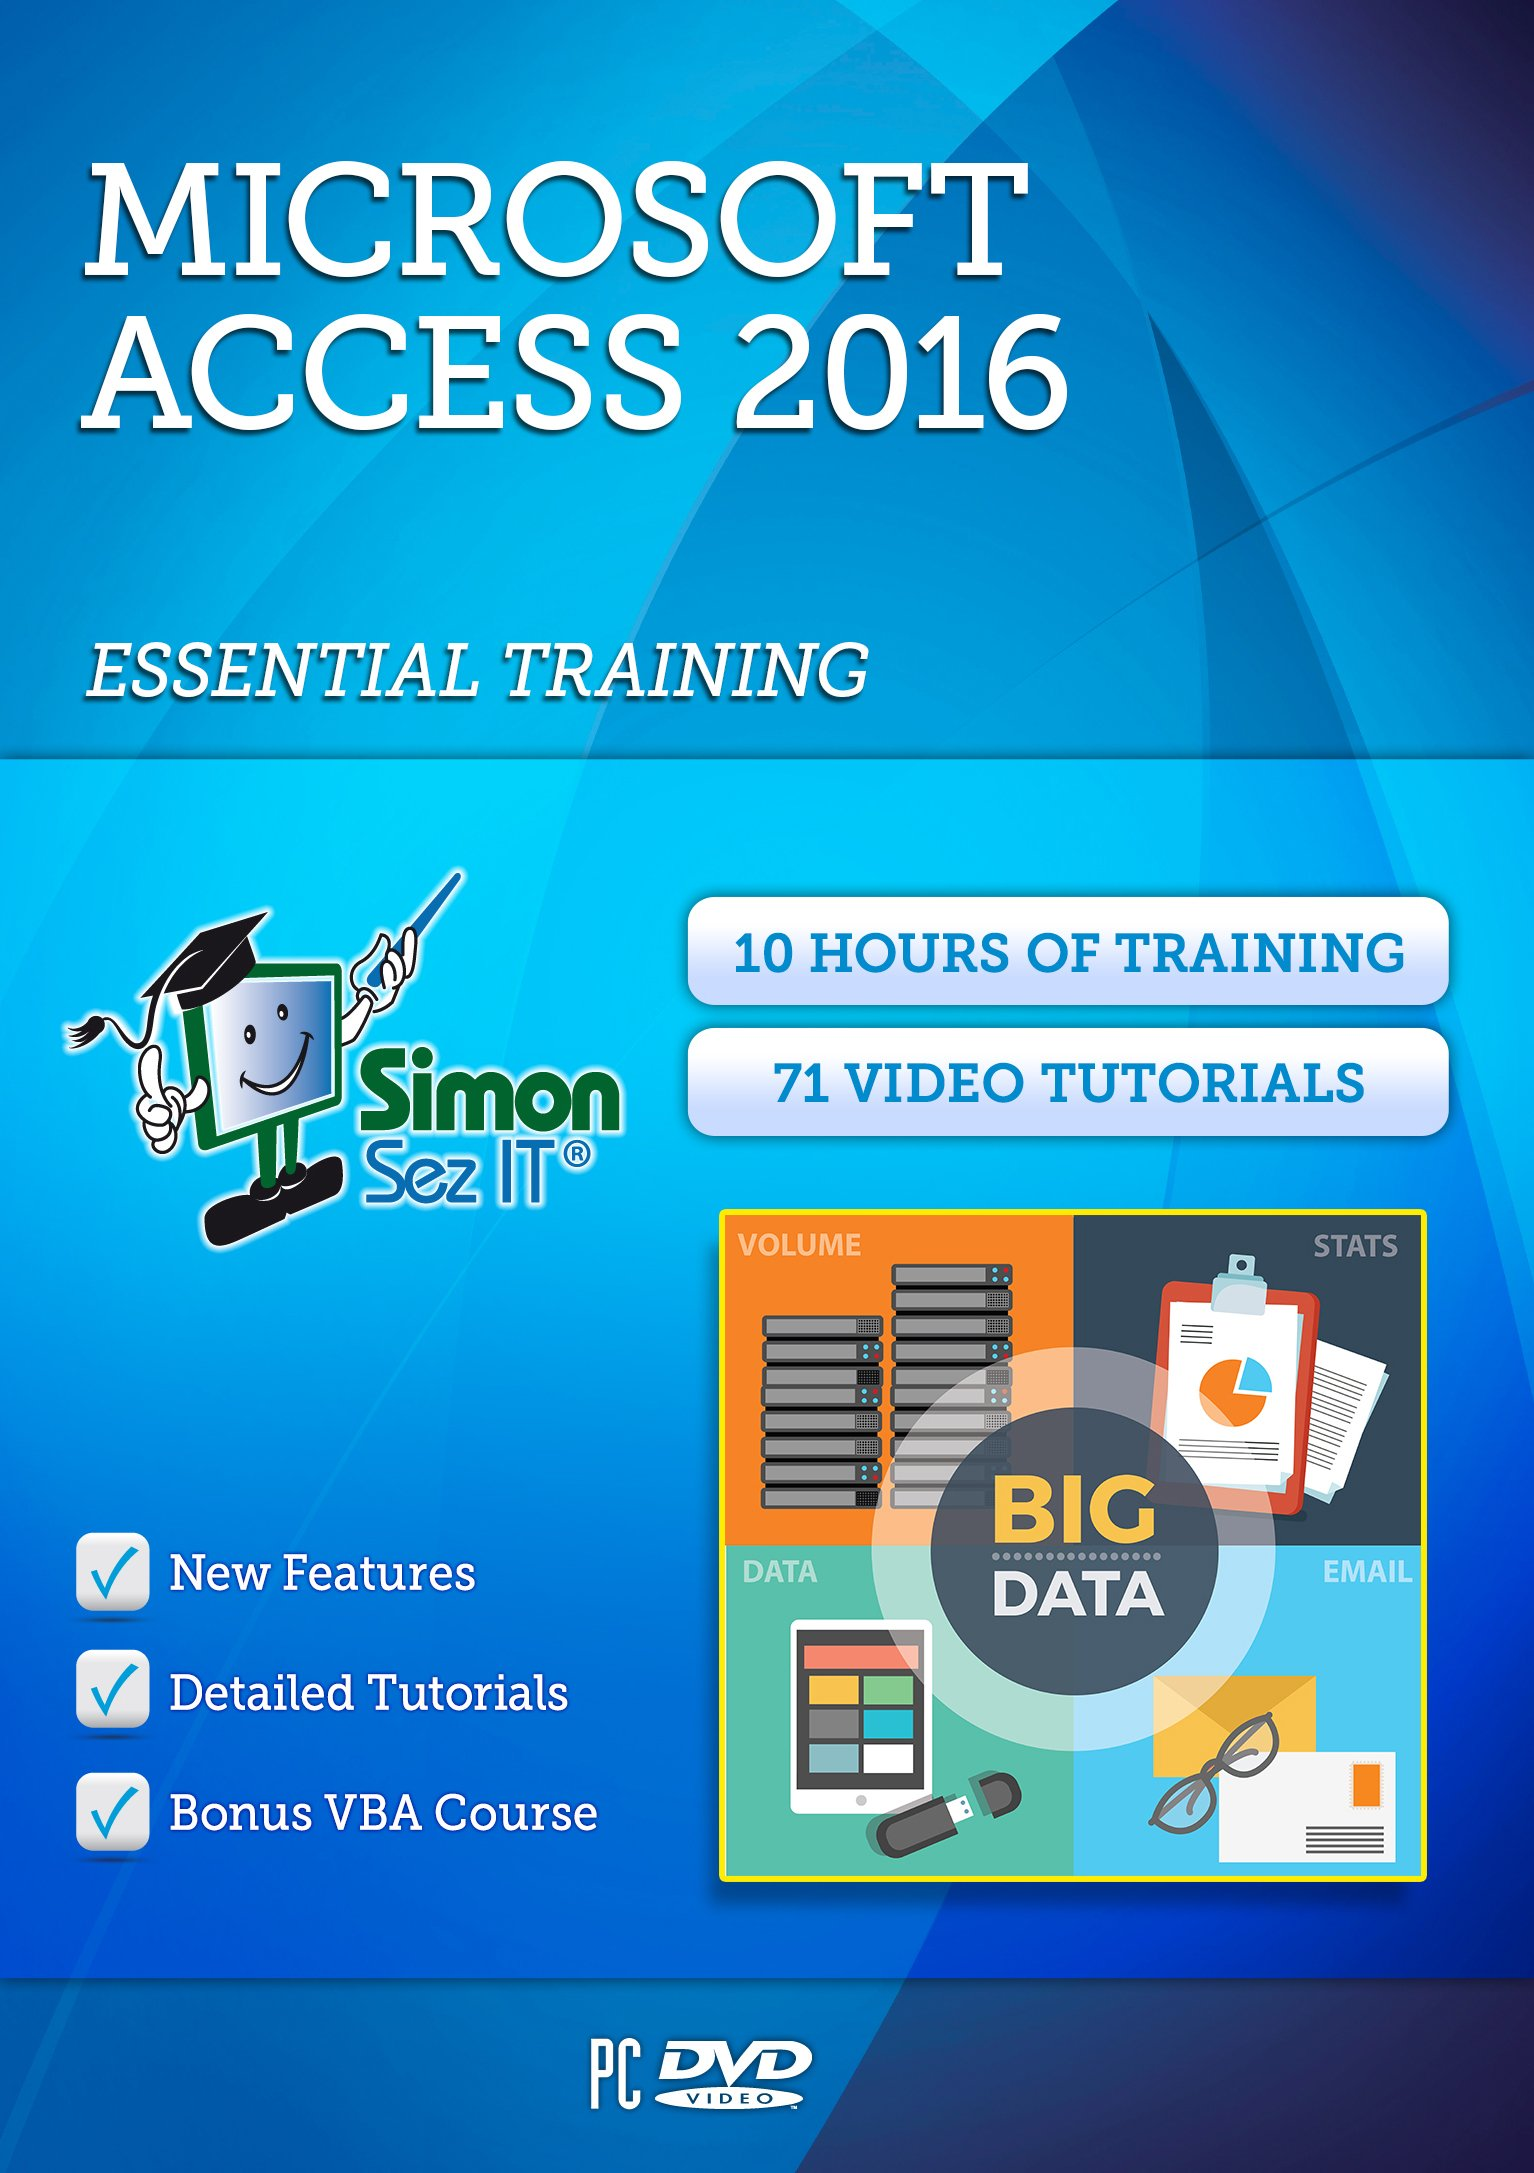 Access 2016 Training Course For Beginners: Essential Training by Simon Sez IT